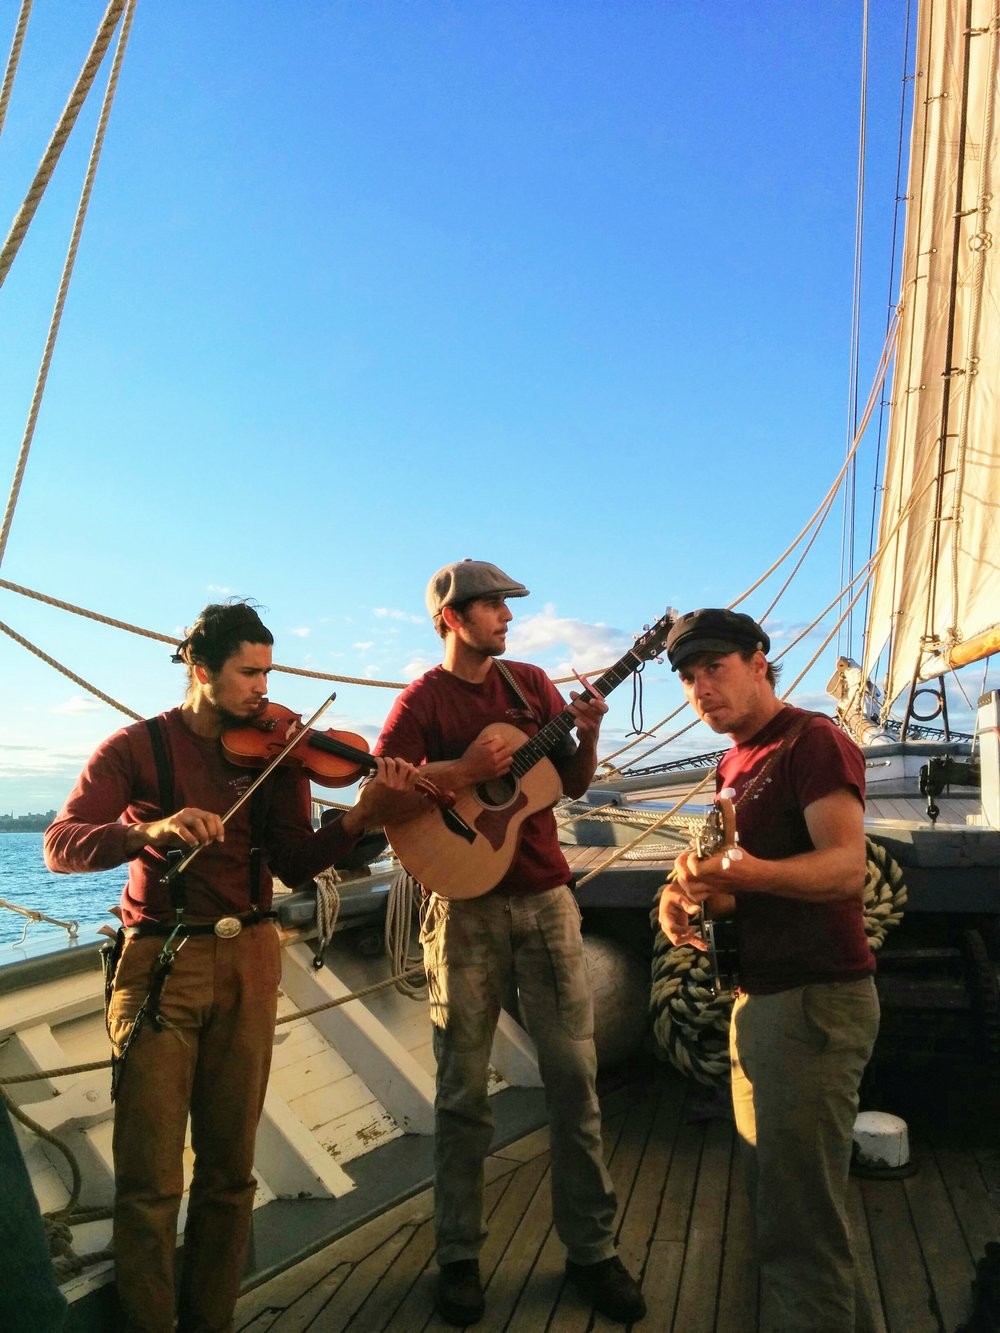 three man band playing on a boat